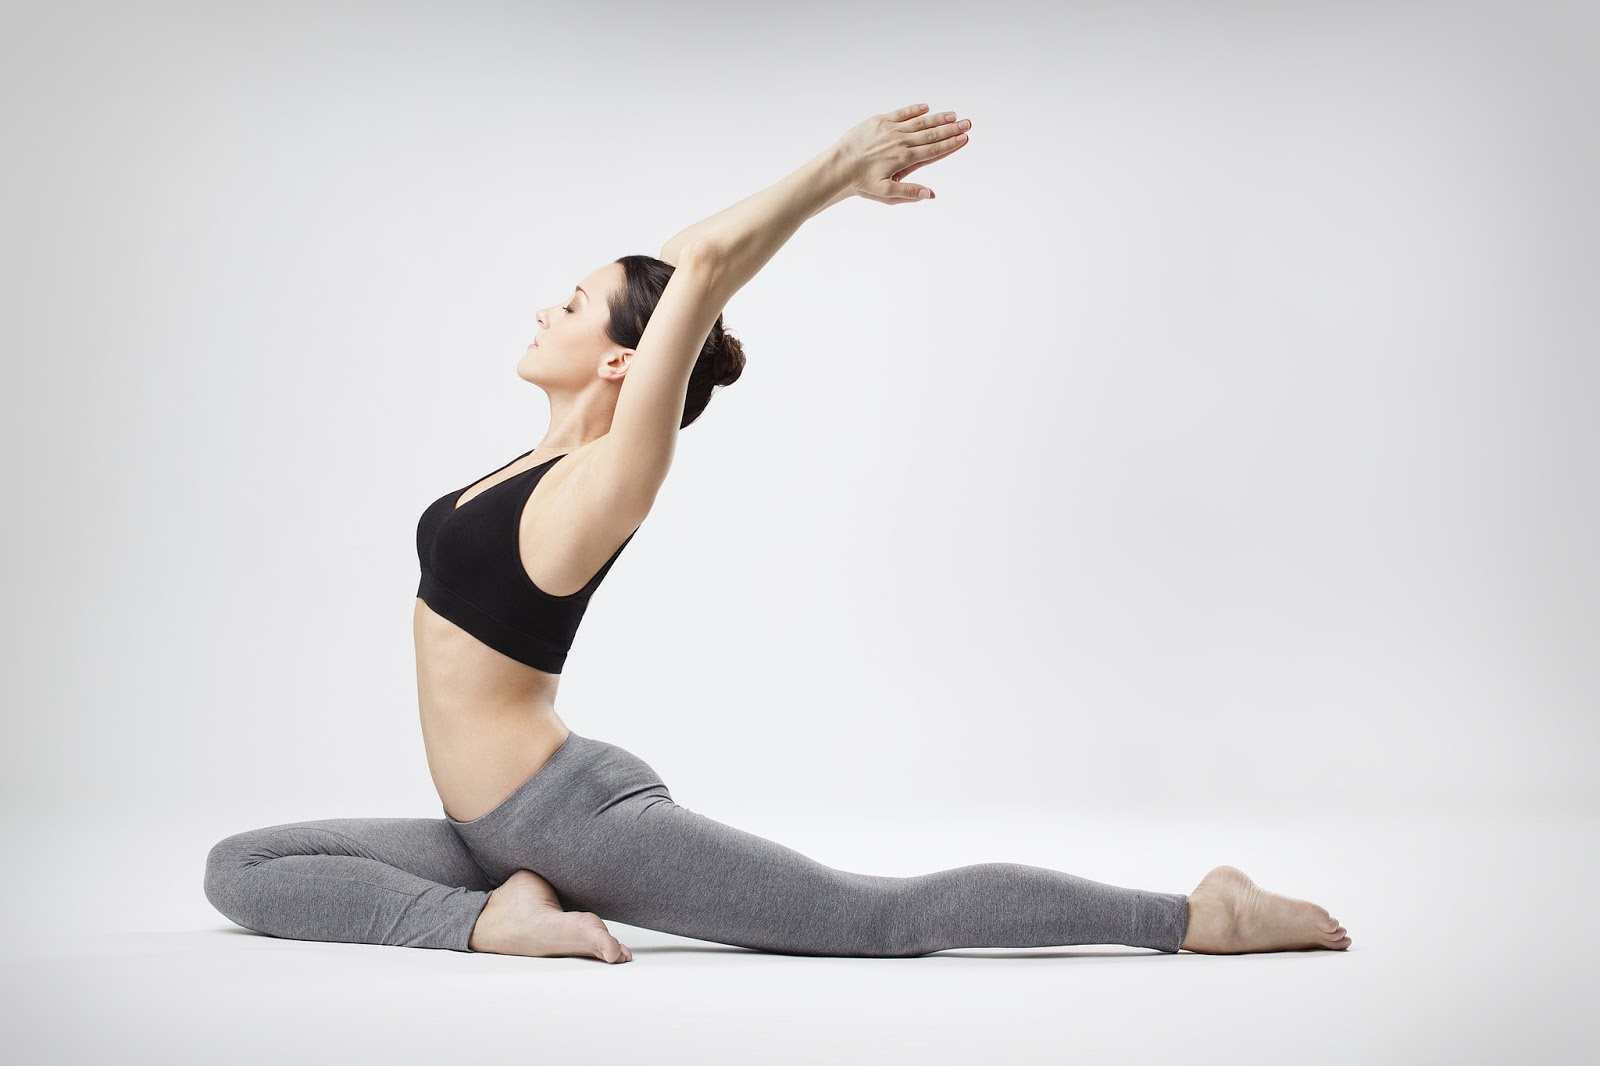 10 Yoga Exercises For Healthy Living